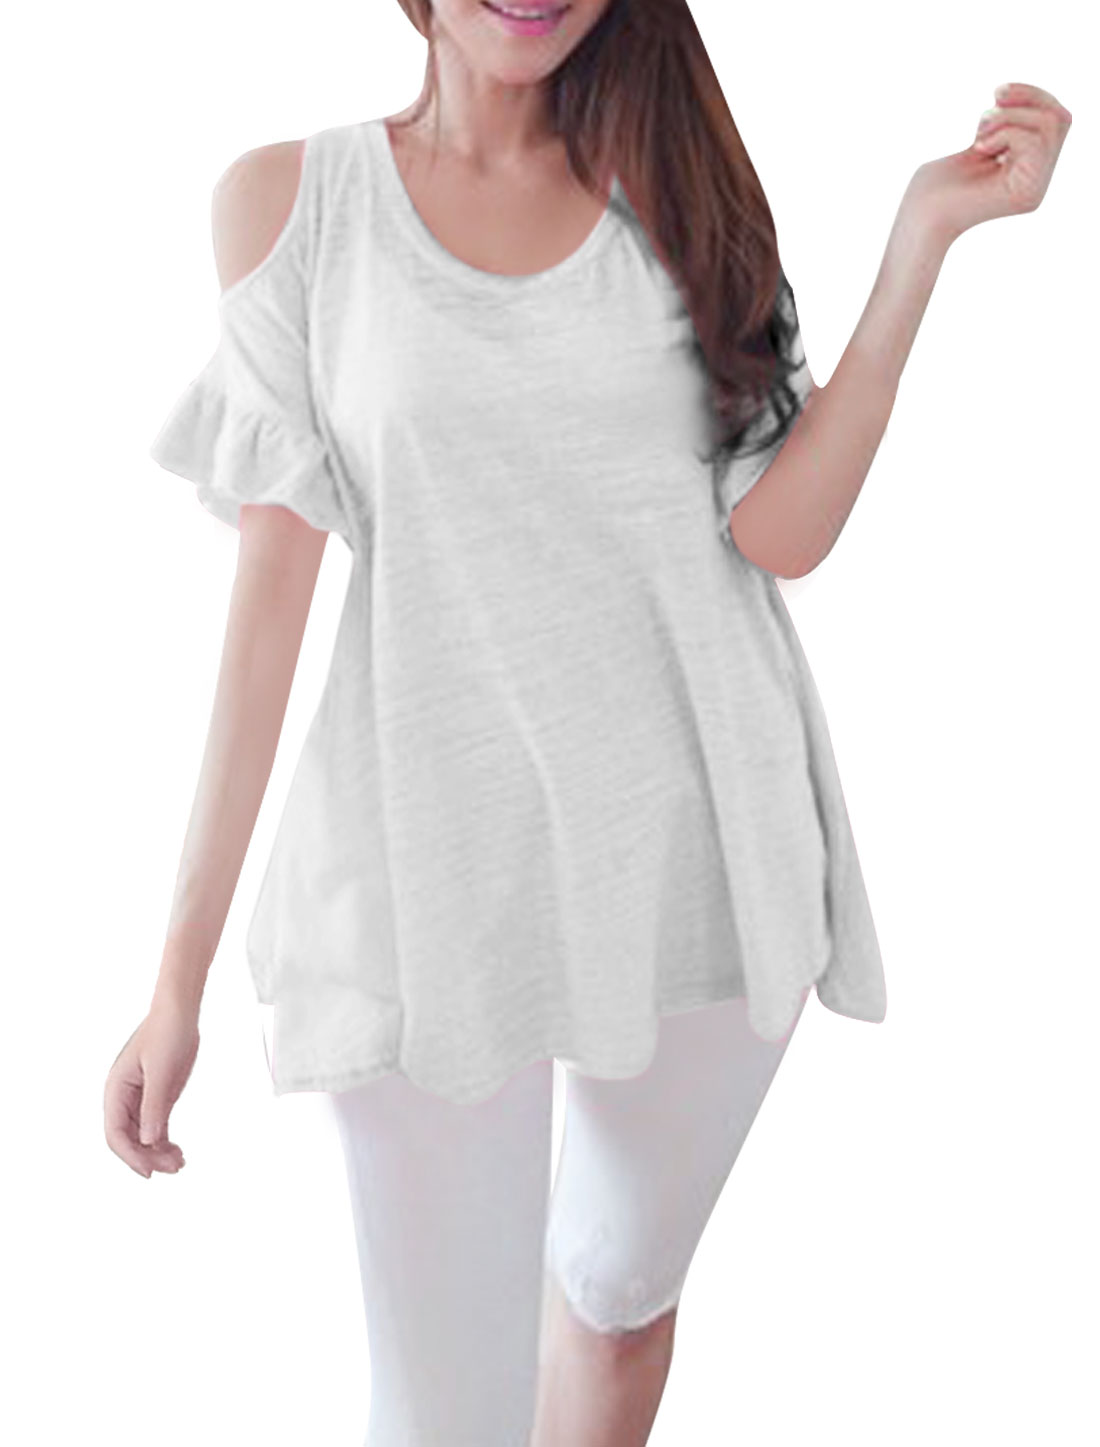 Woman Chic Round Neck Short Flutter Sleeve Cutout Shoulder White Loose Top M